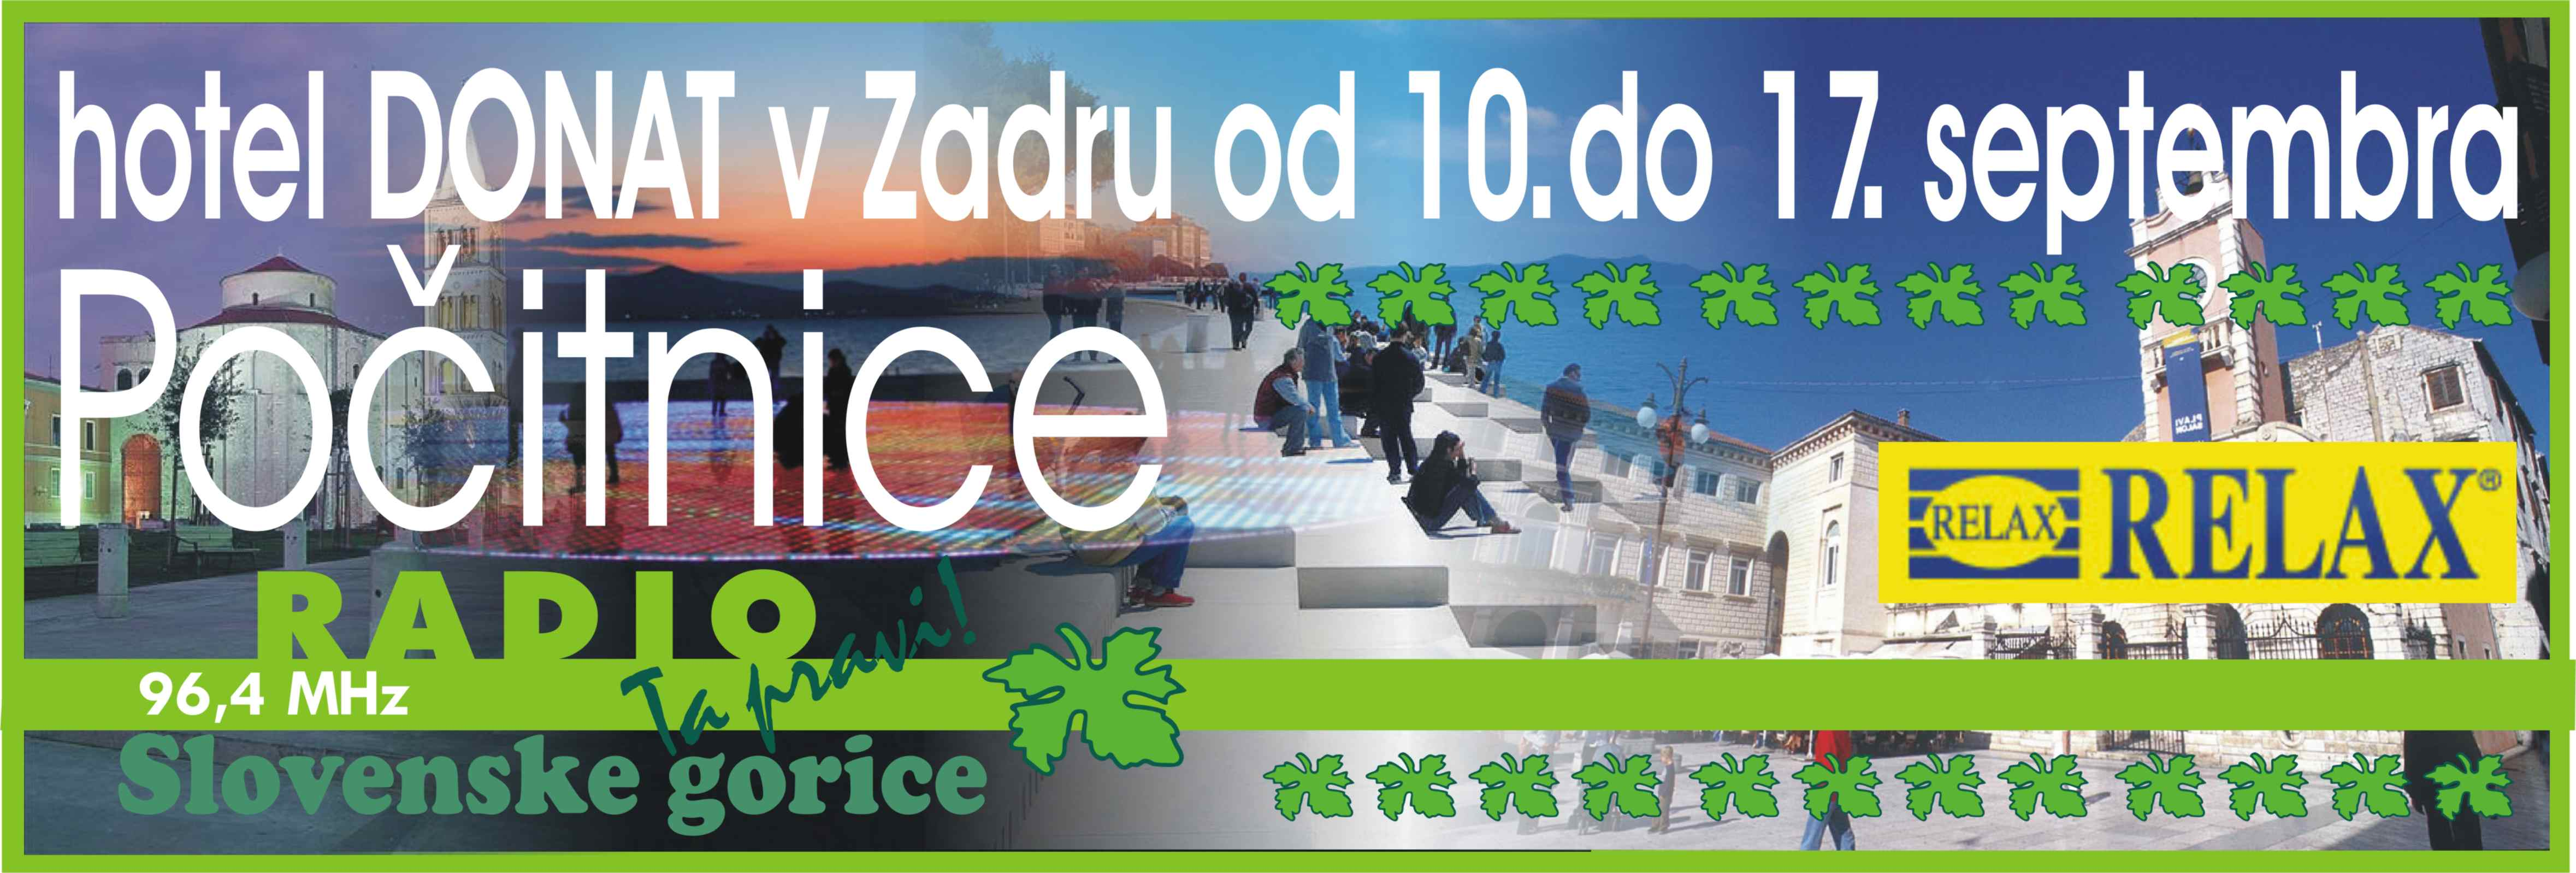 Počitnice od 10. do 17. septembra 2013